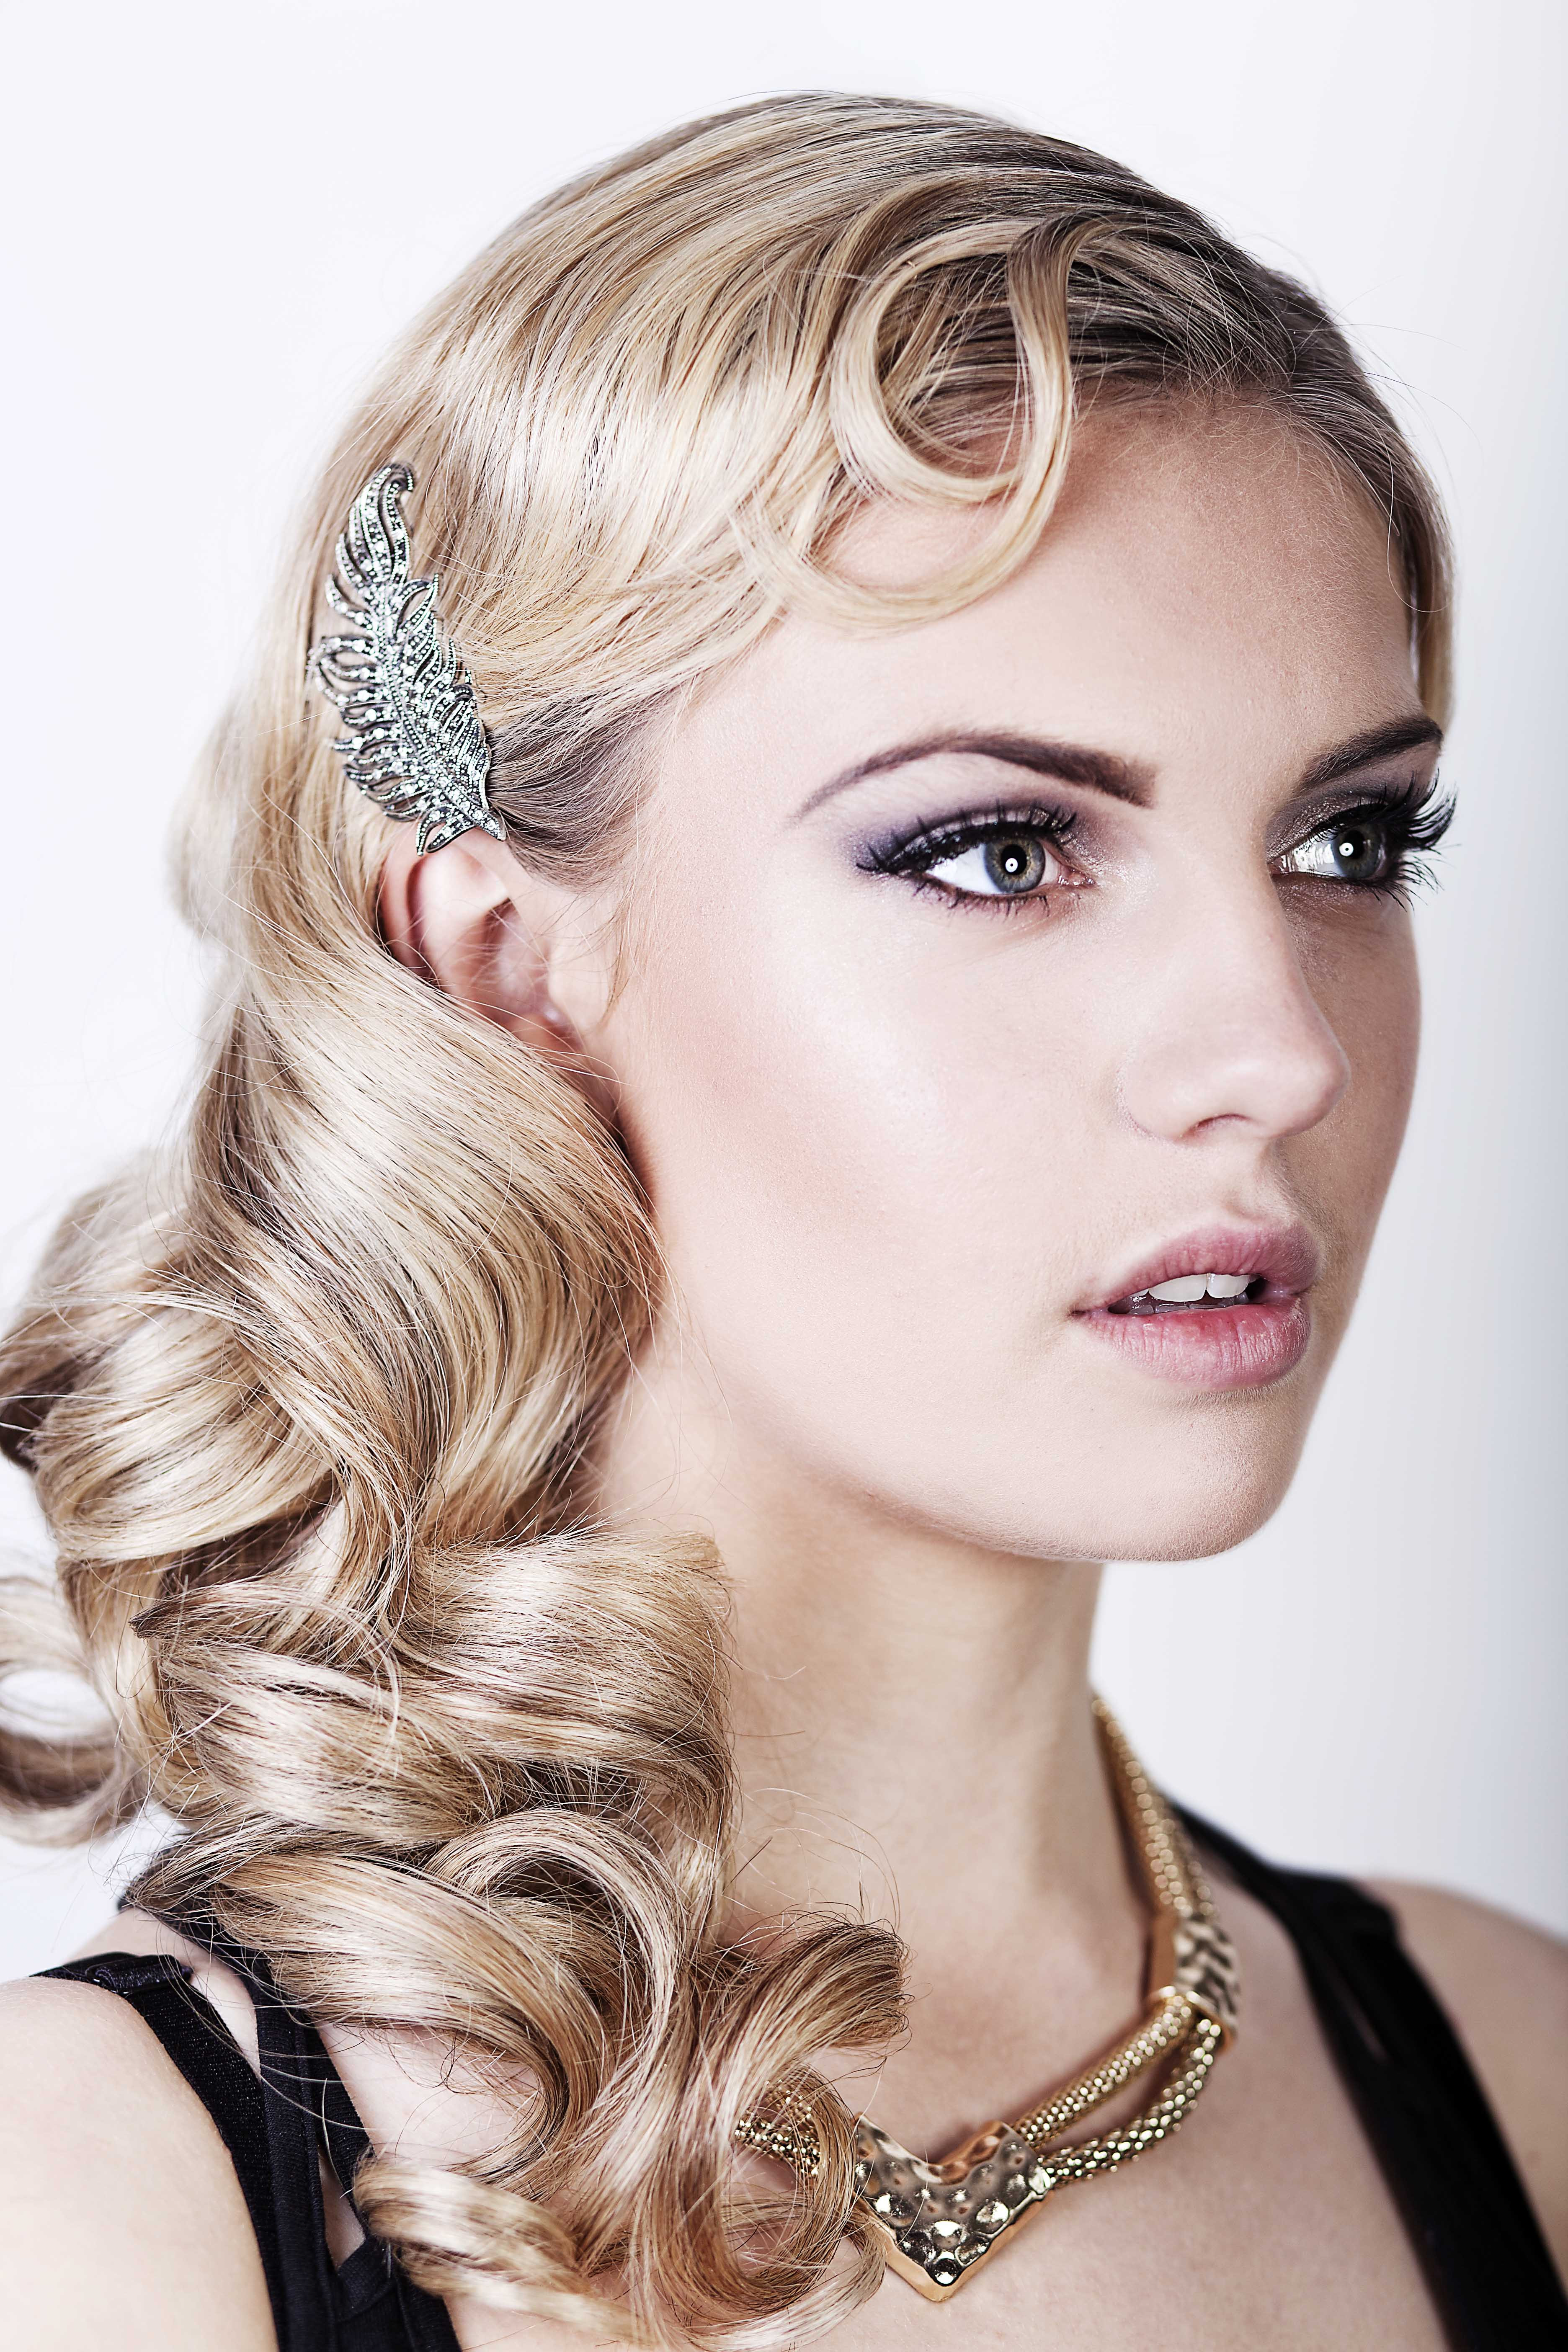 Best ideas about 20S Long Hairstyle . Save or Pin Friday Feature Seriously Great Gatsby 20s inspired hair Now.